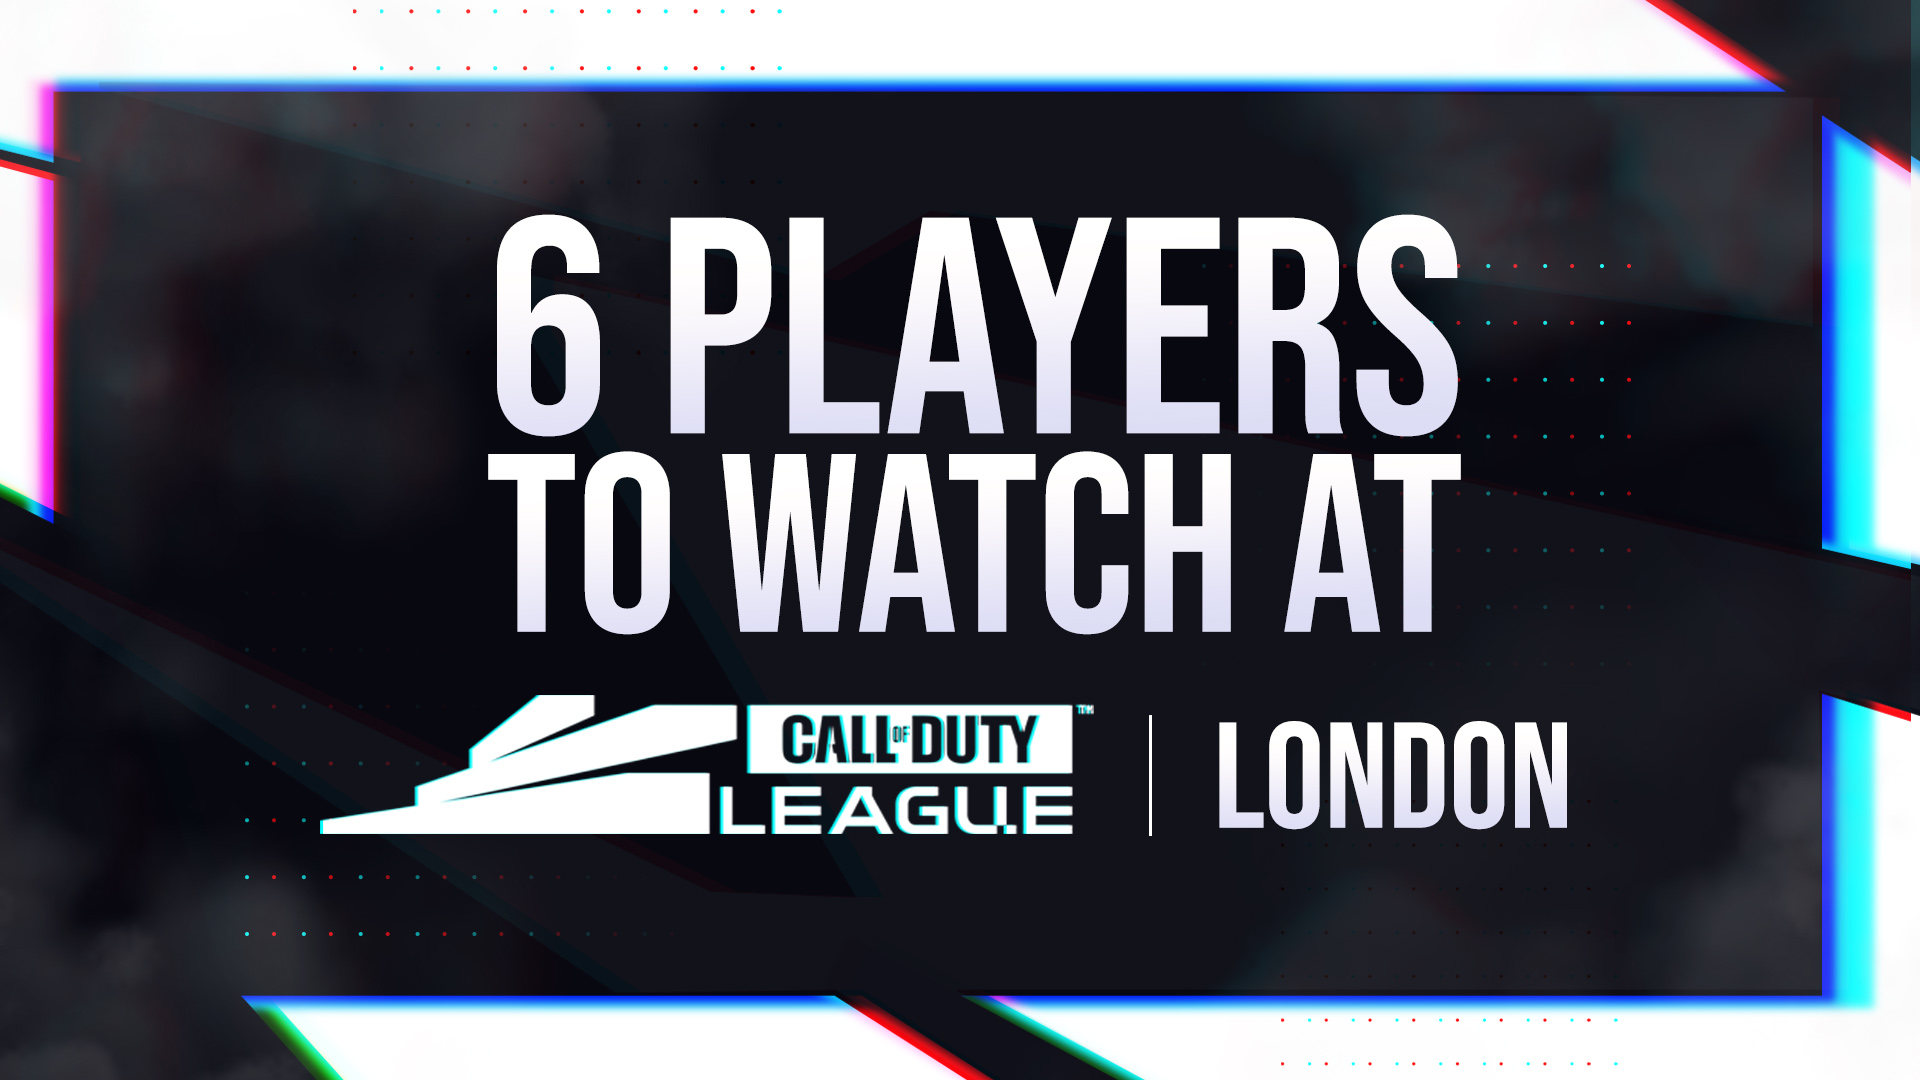 6 players to watch at CDL London